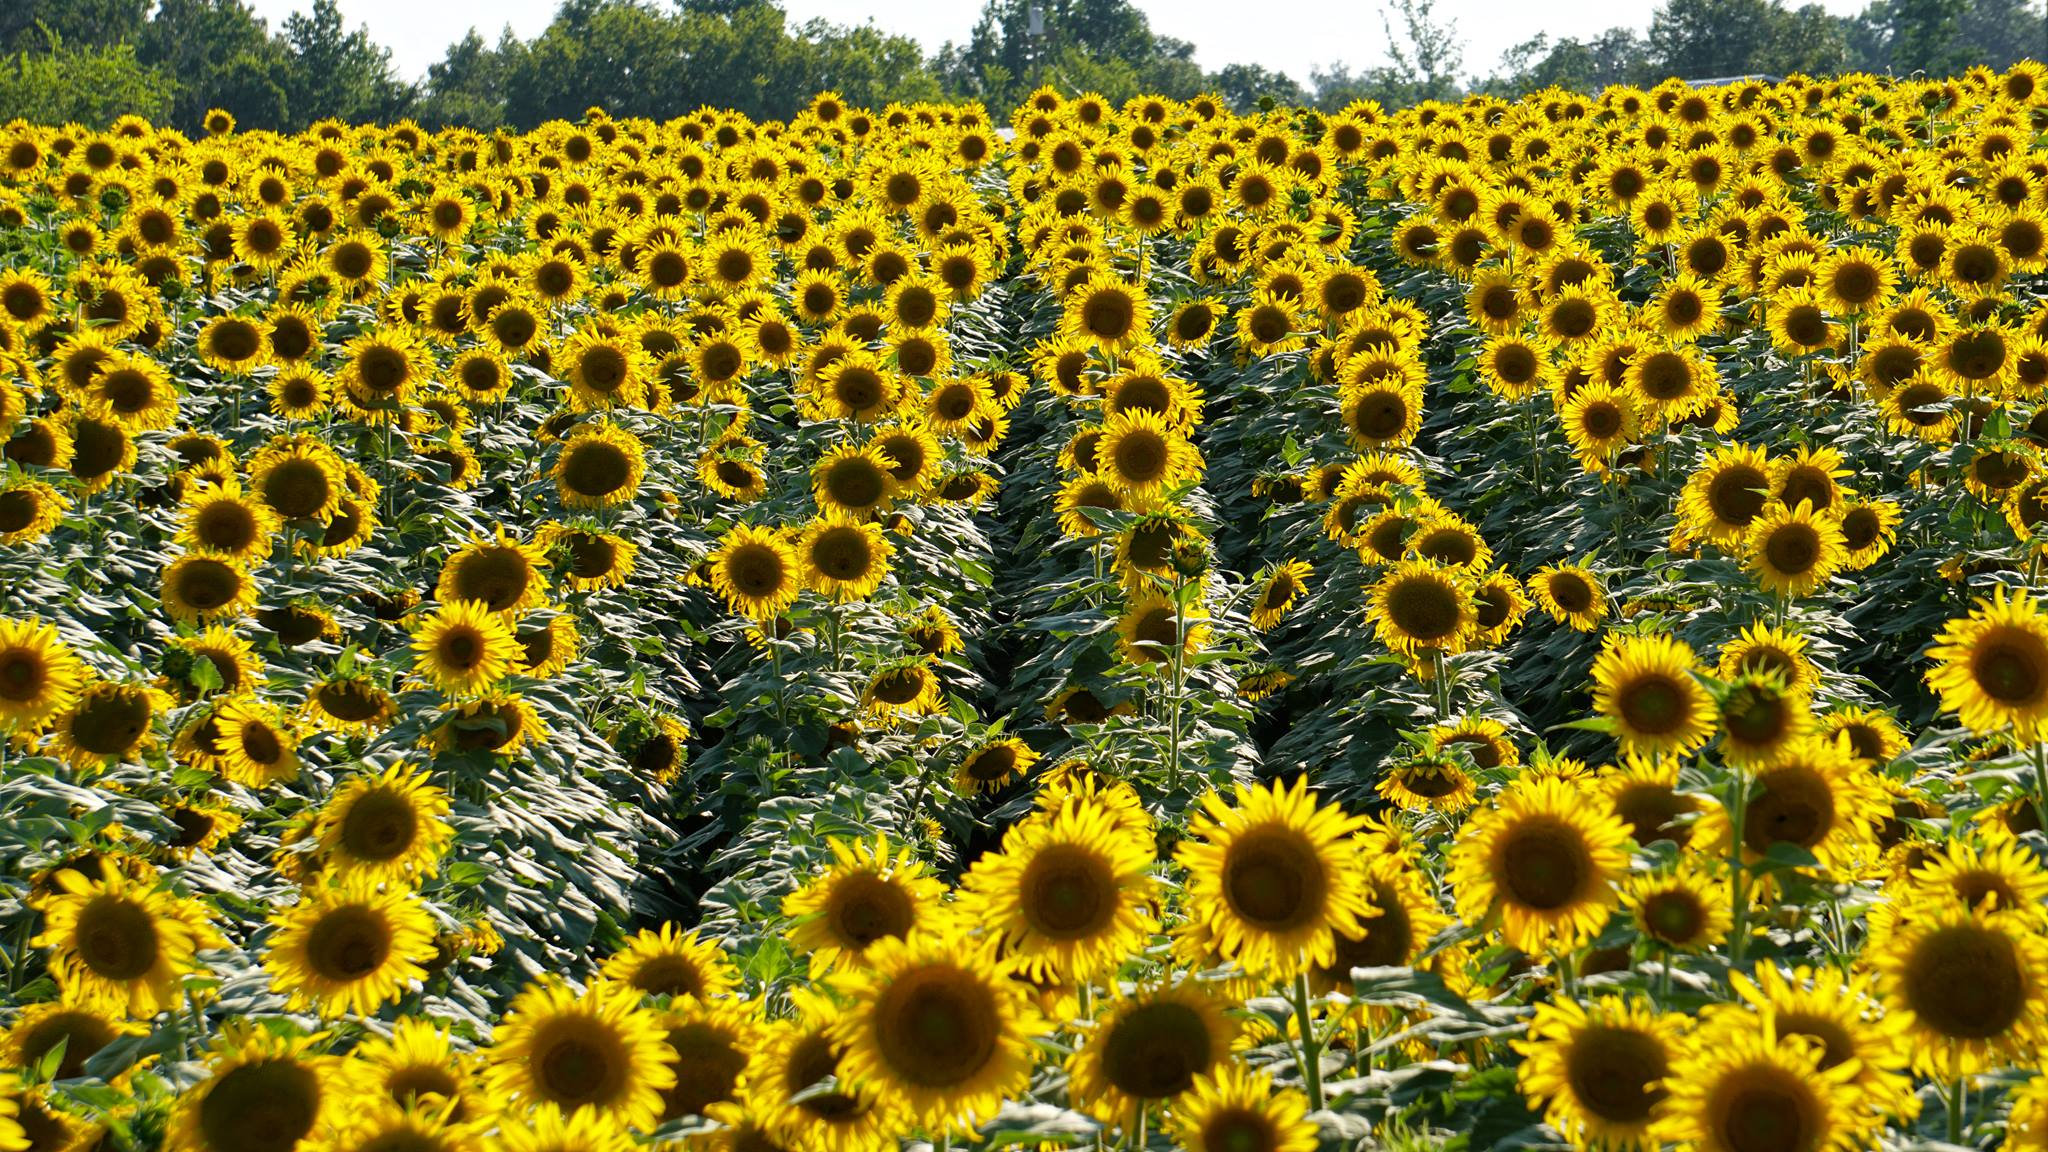 Autauga Sunflower Field Set to Bloom in Early July! | Alabama Aerial ...